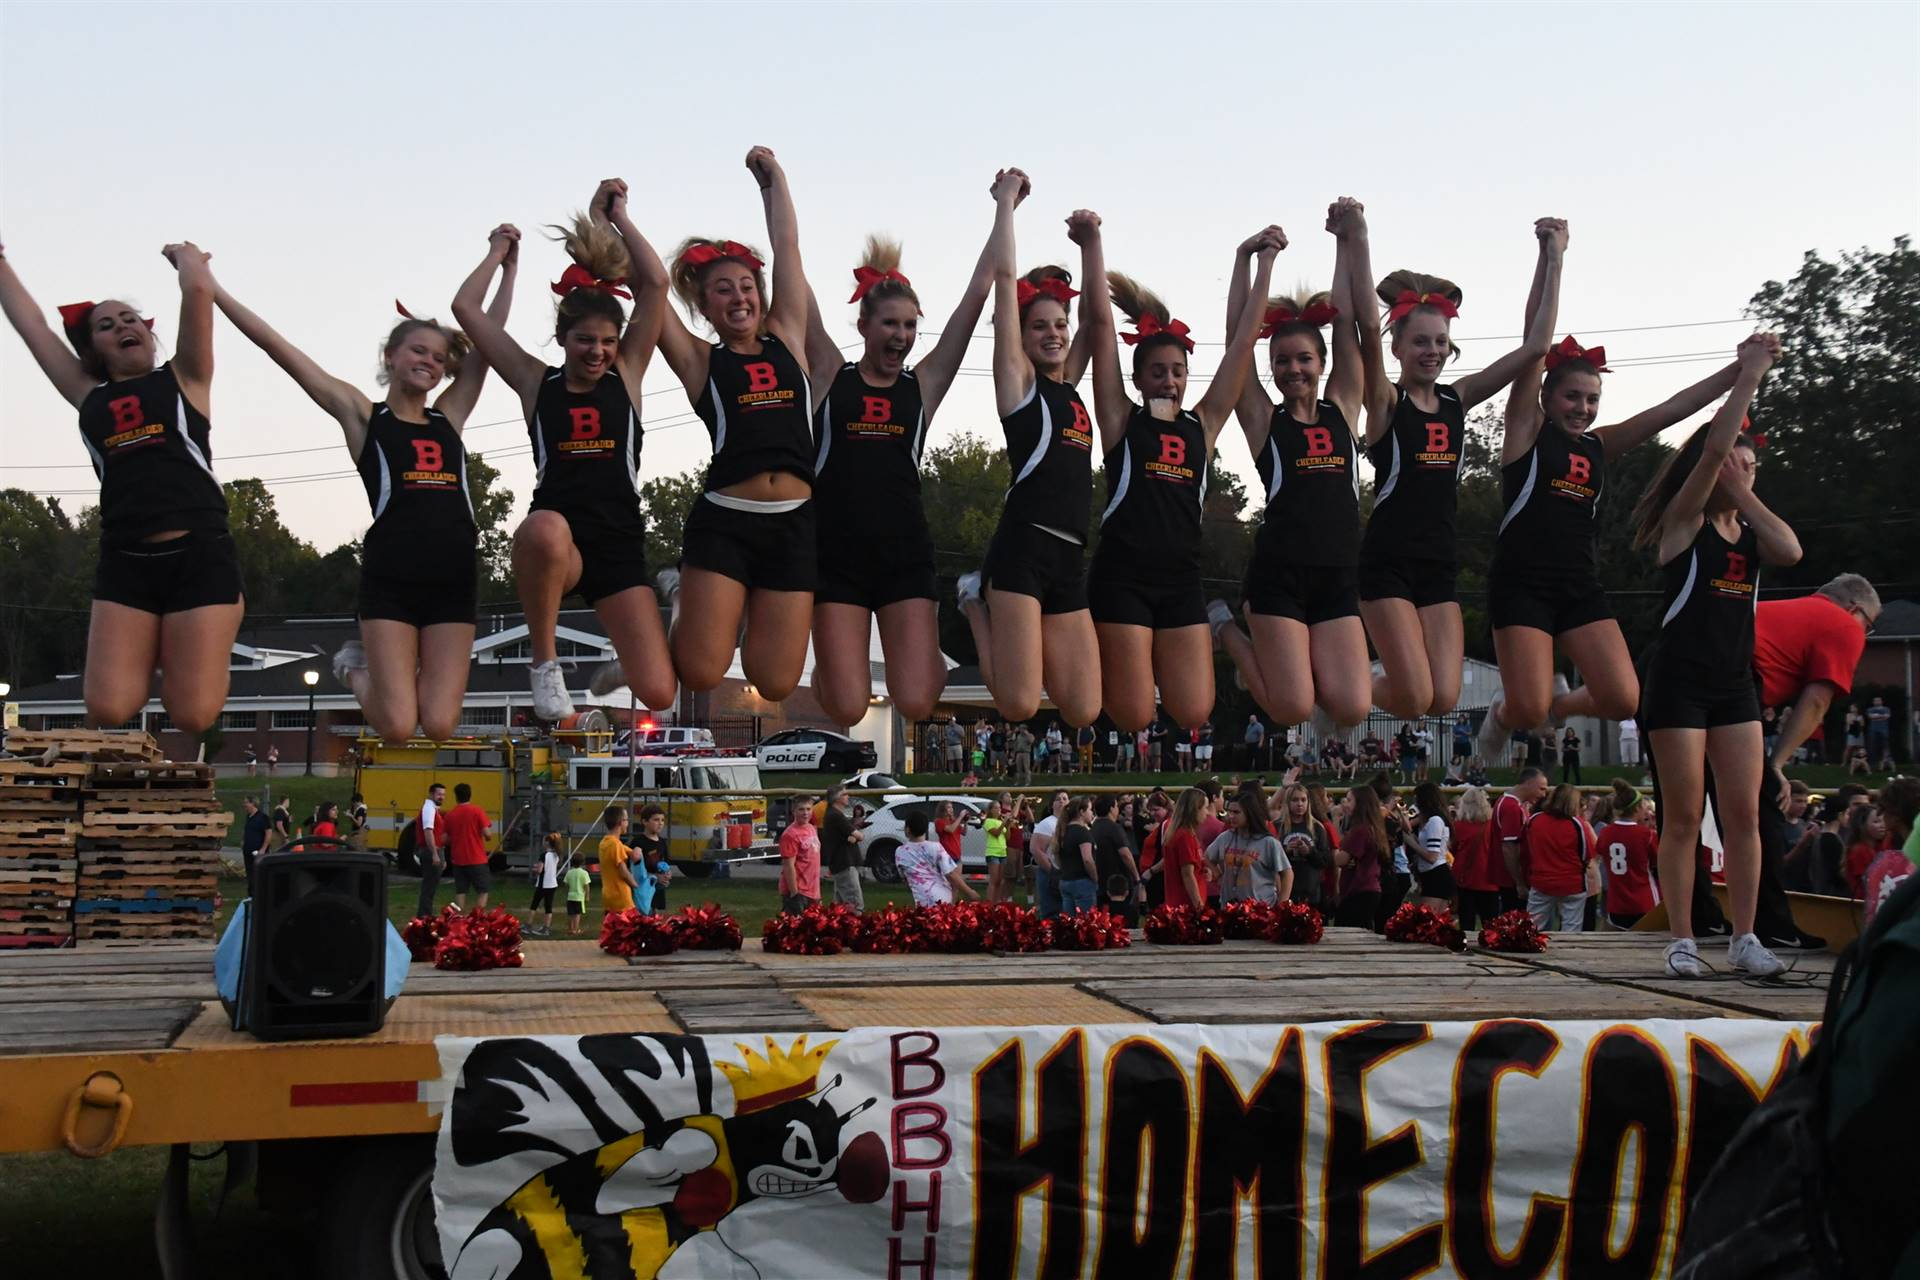 Cheerleaders at Homecoming Bonfire